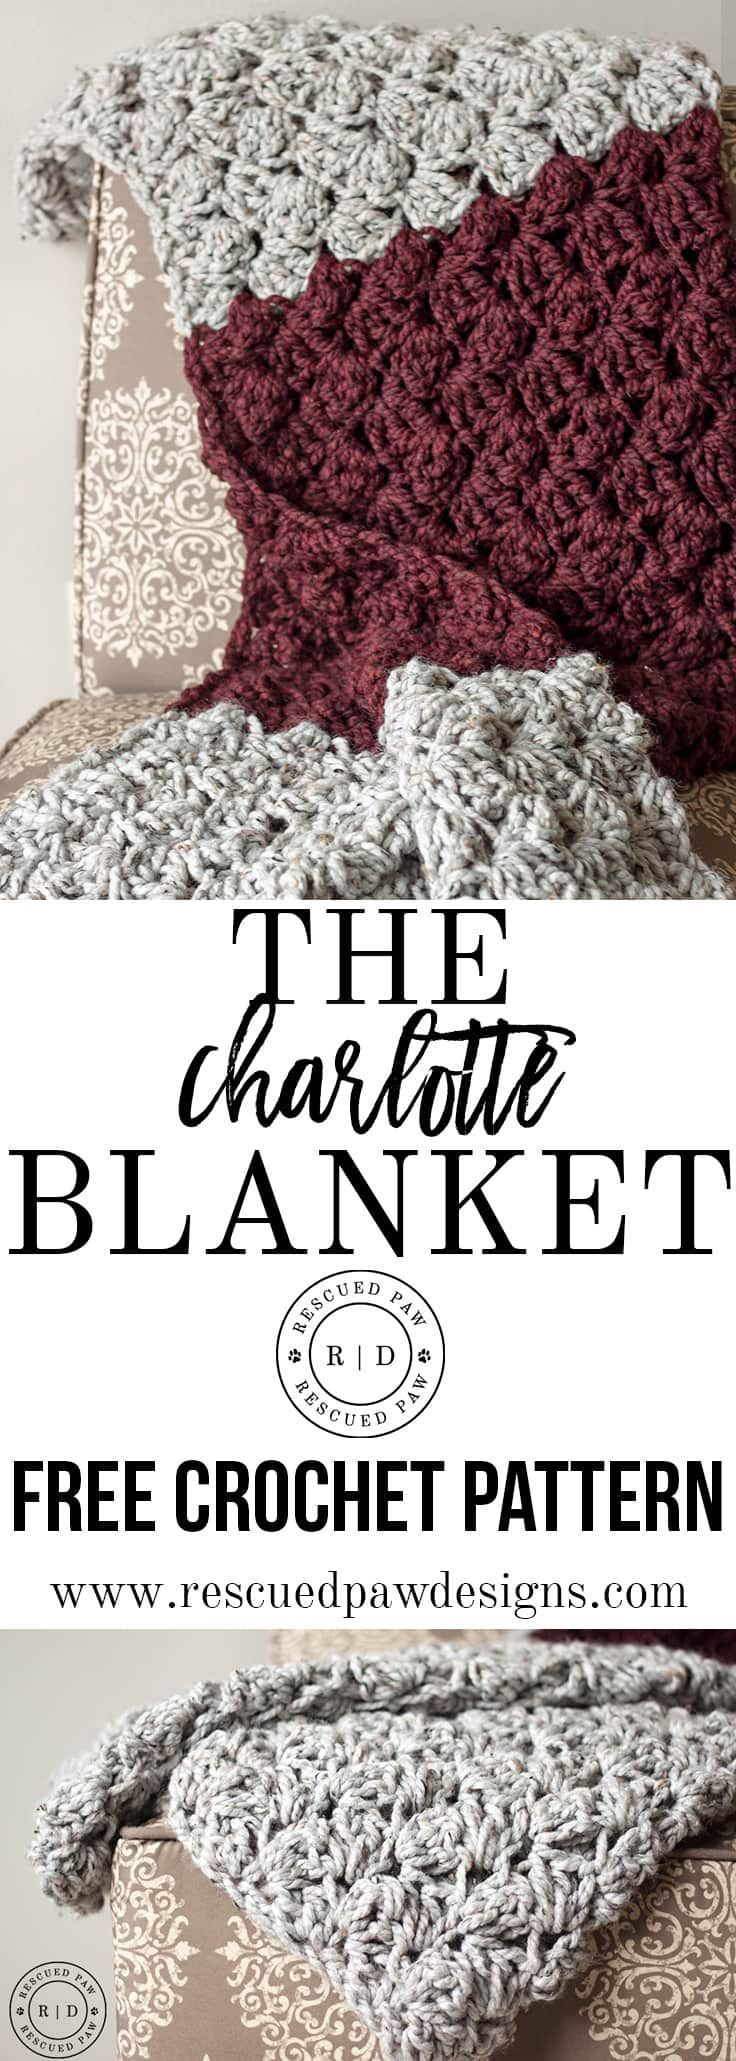 Best 25 crochet afghans ideas on pinterest crochet blanket charlotte crochet blanket pattern free crochet pattern by rescued paw designs rescuedpawdesigns bankloansurffo Images